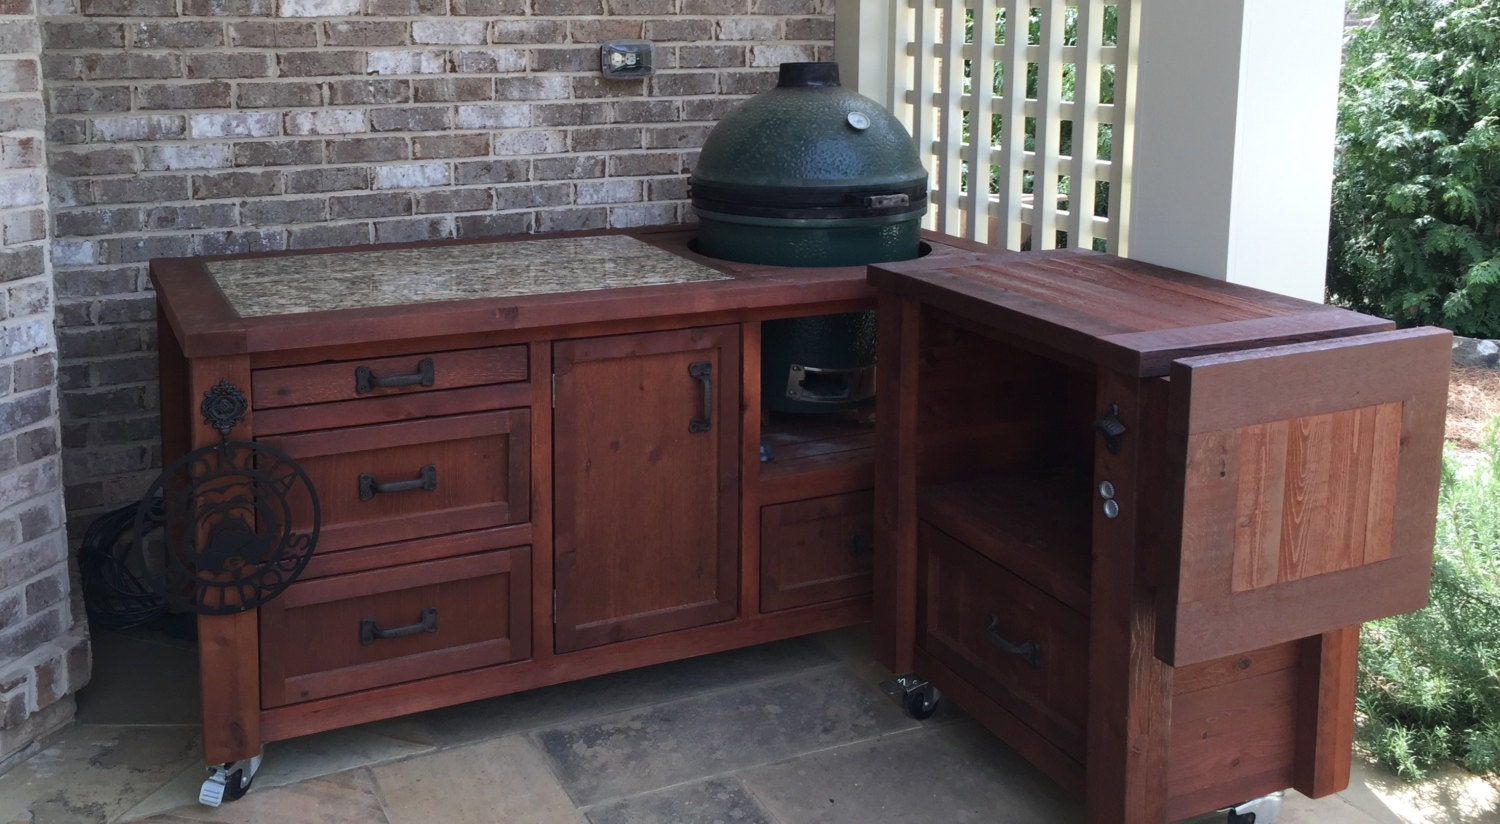 Grill Table Or Grill Cabinet For Big Green Egg Kamado Joe